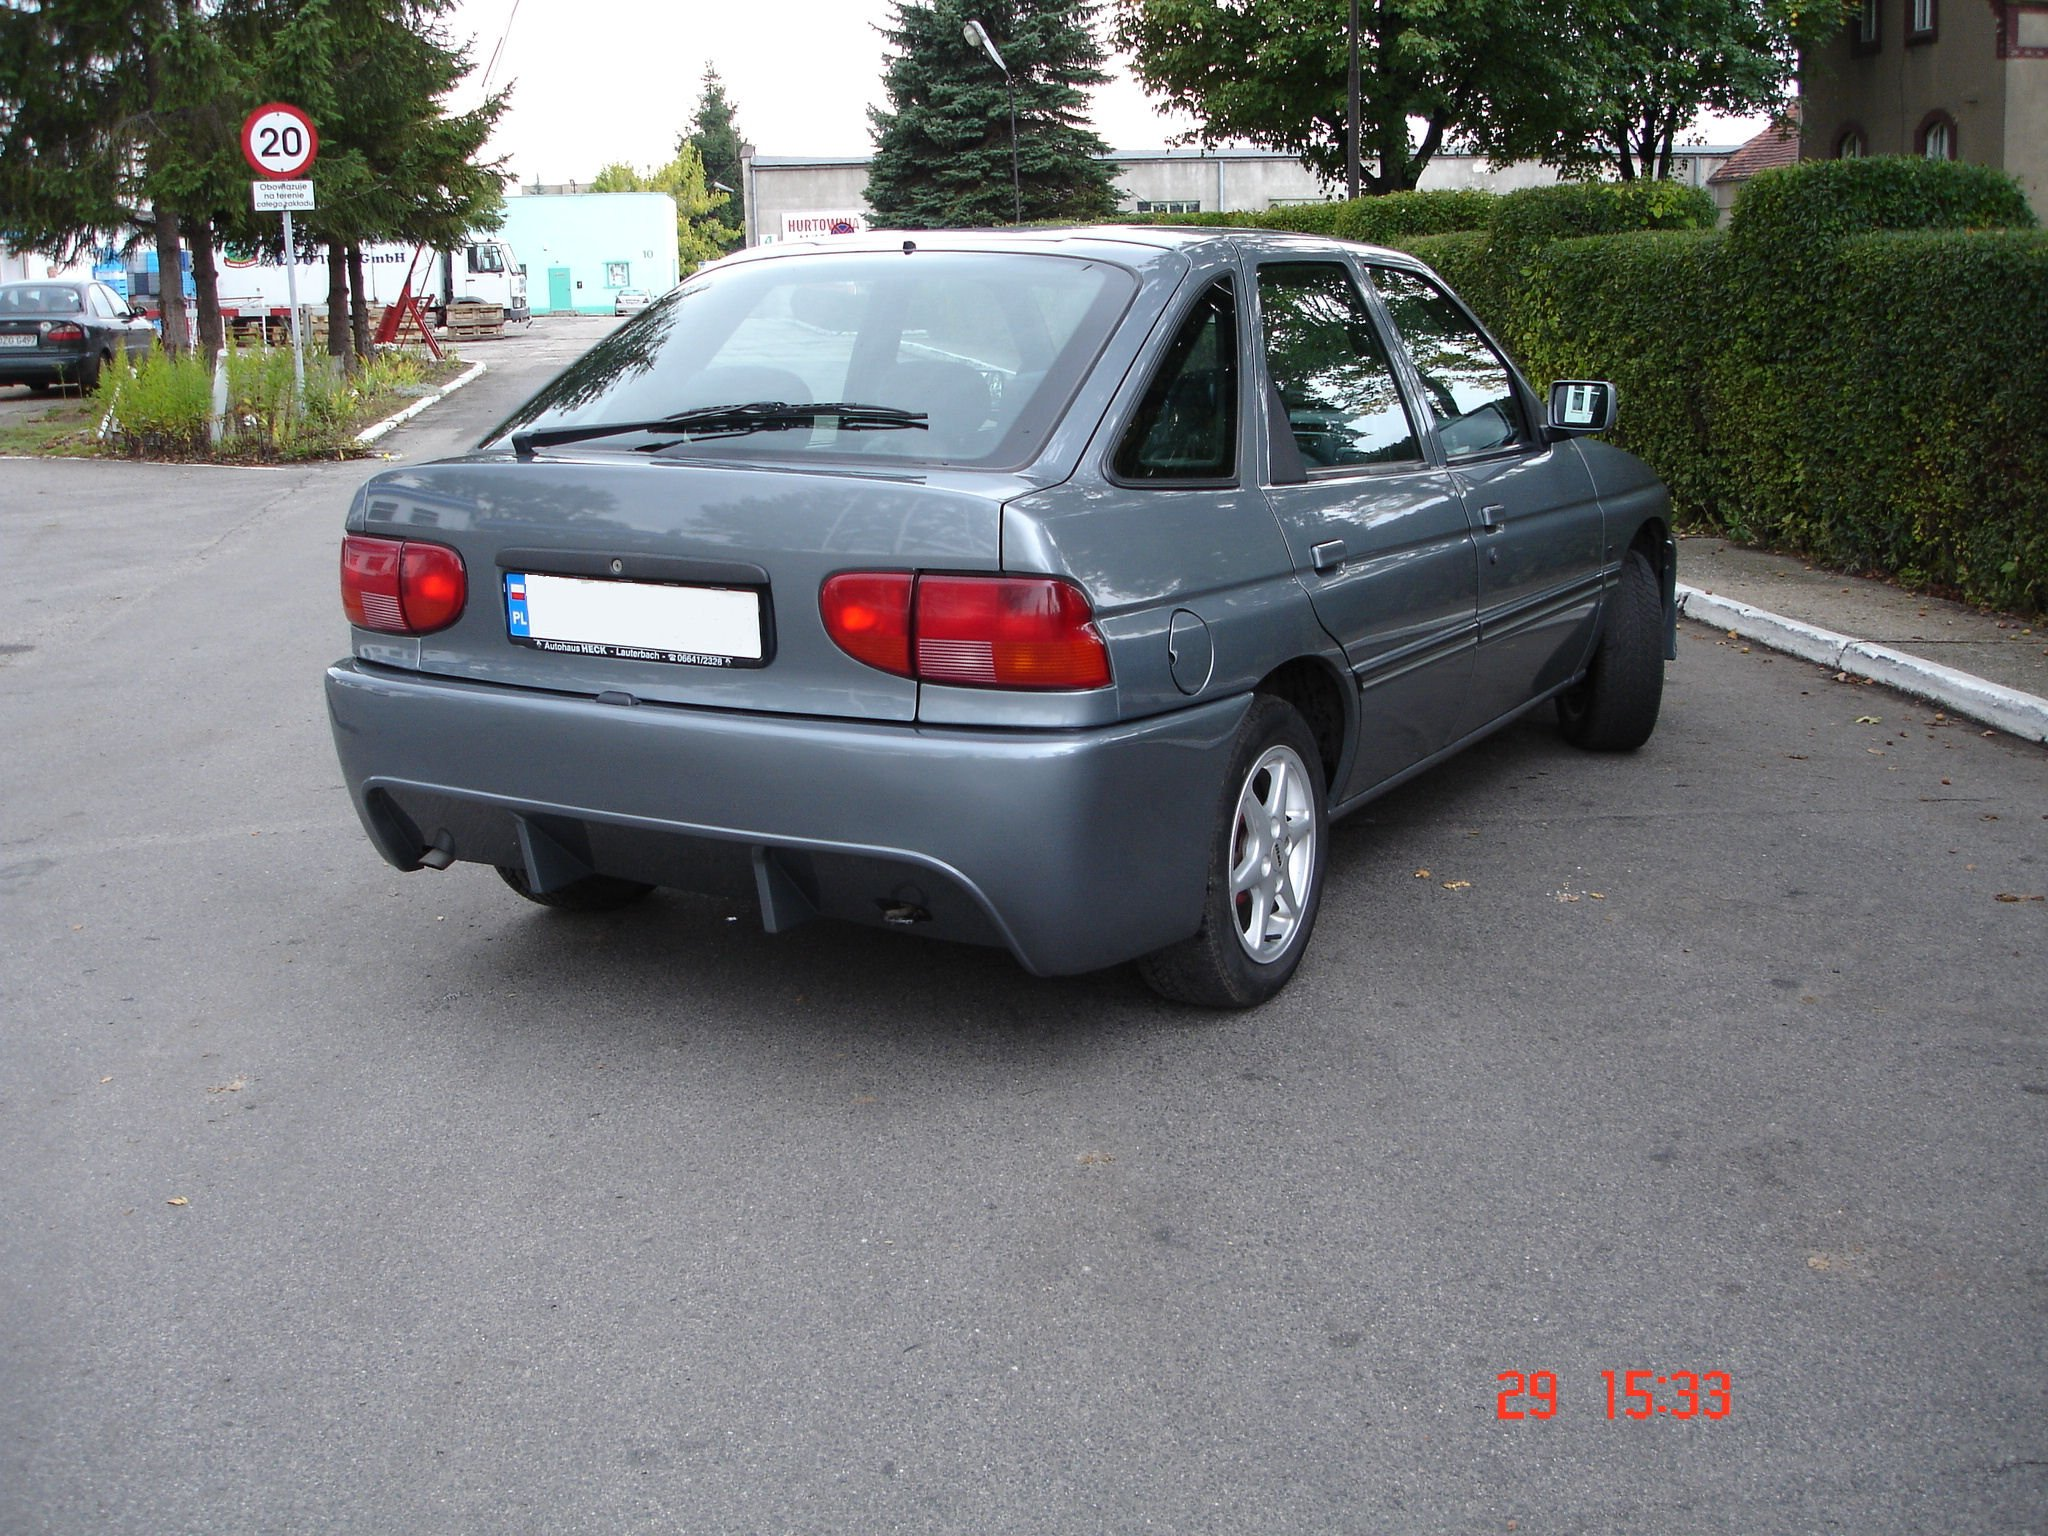 1995 Ford Escort Specs, Pictures, Trims, Colors || Cars.com